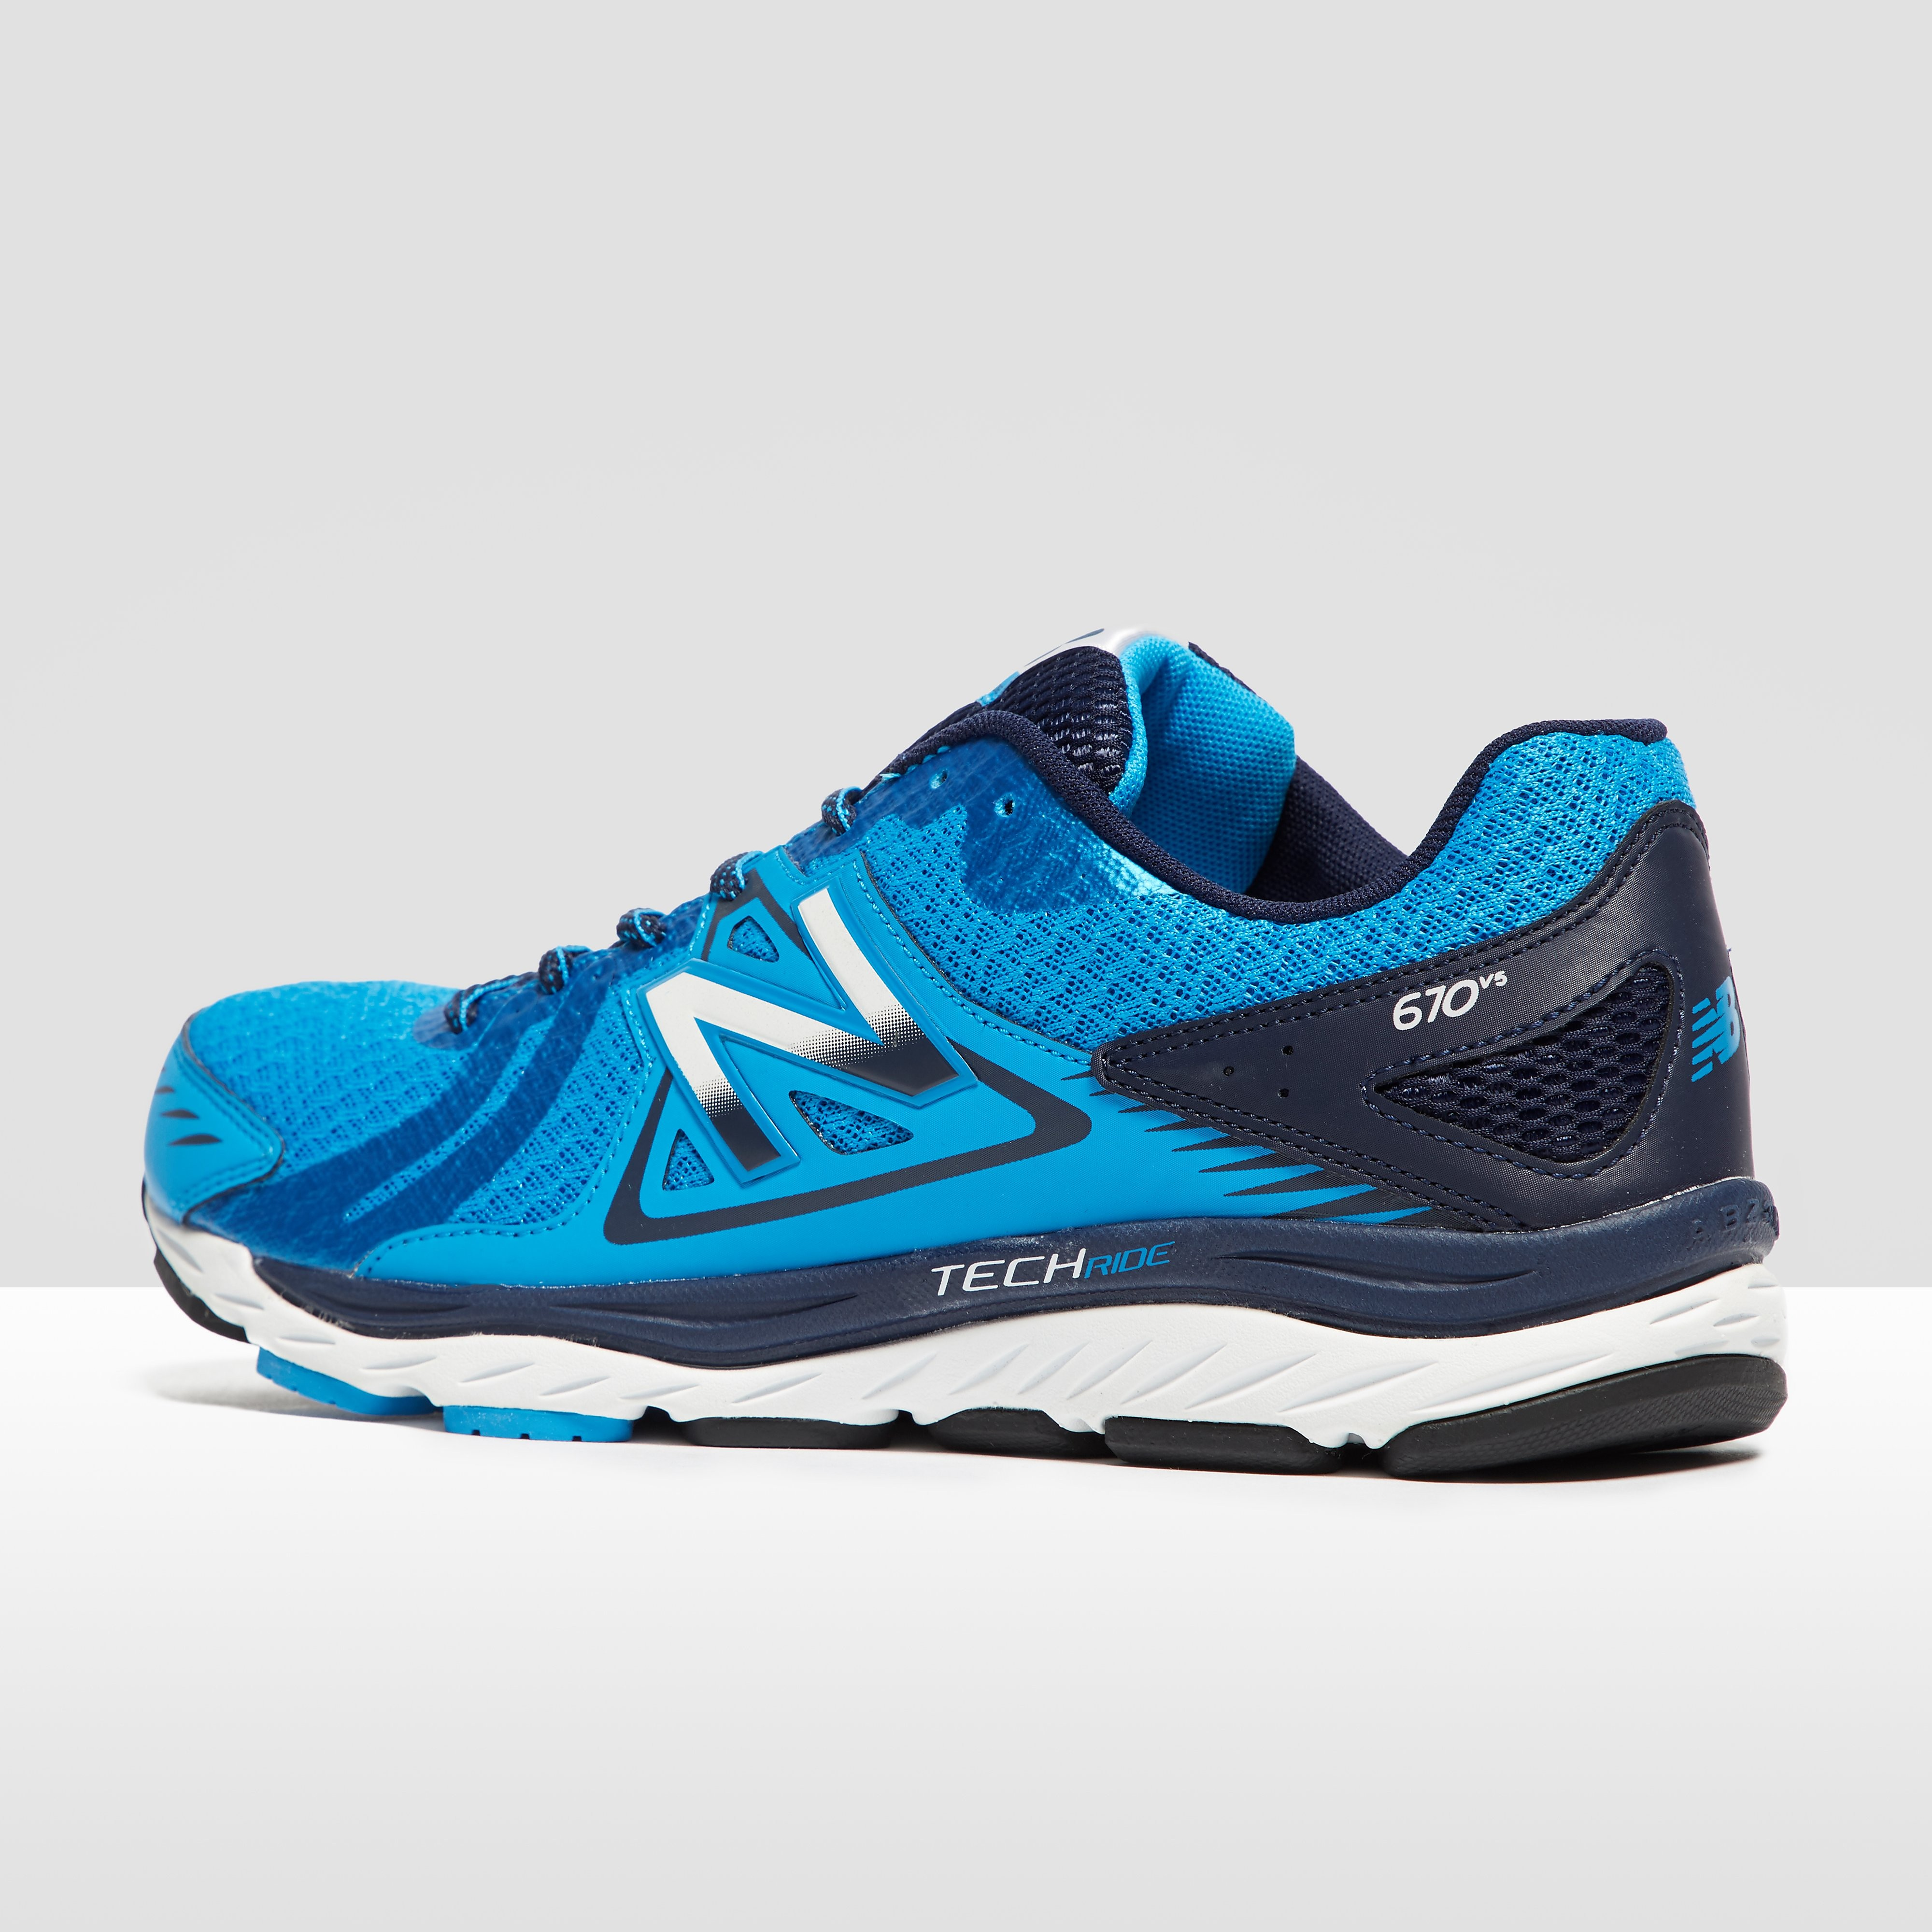 New Balance M670V5 Men's RUNNING SHOES